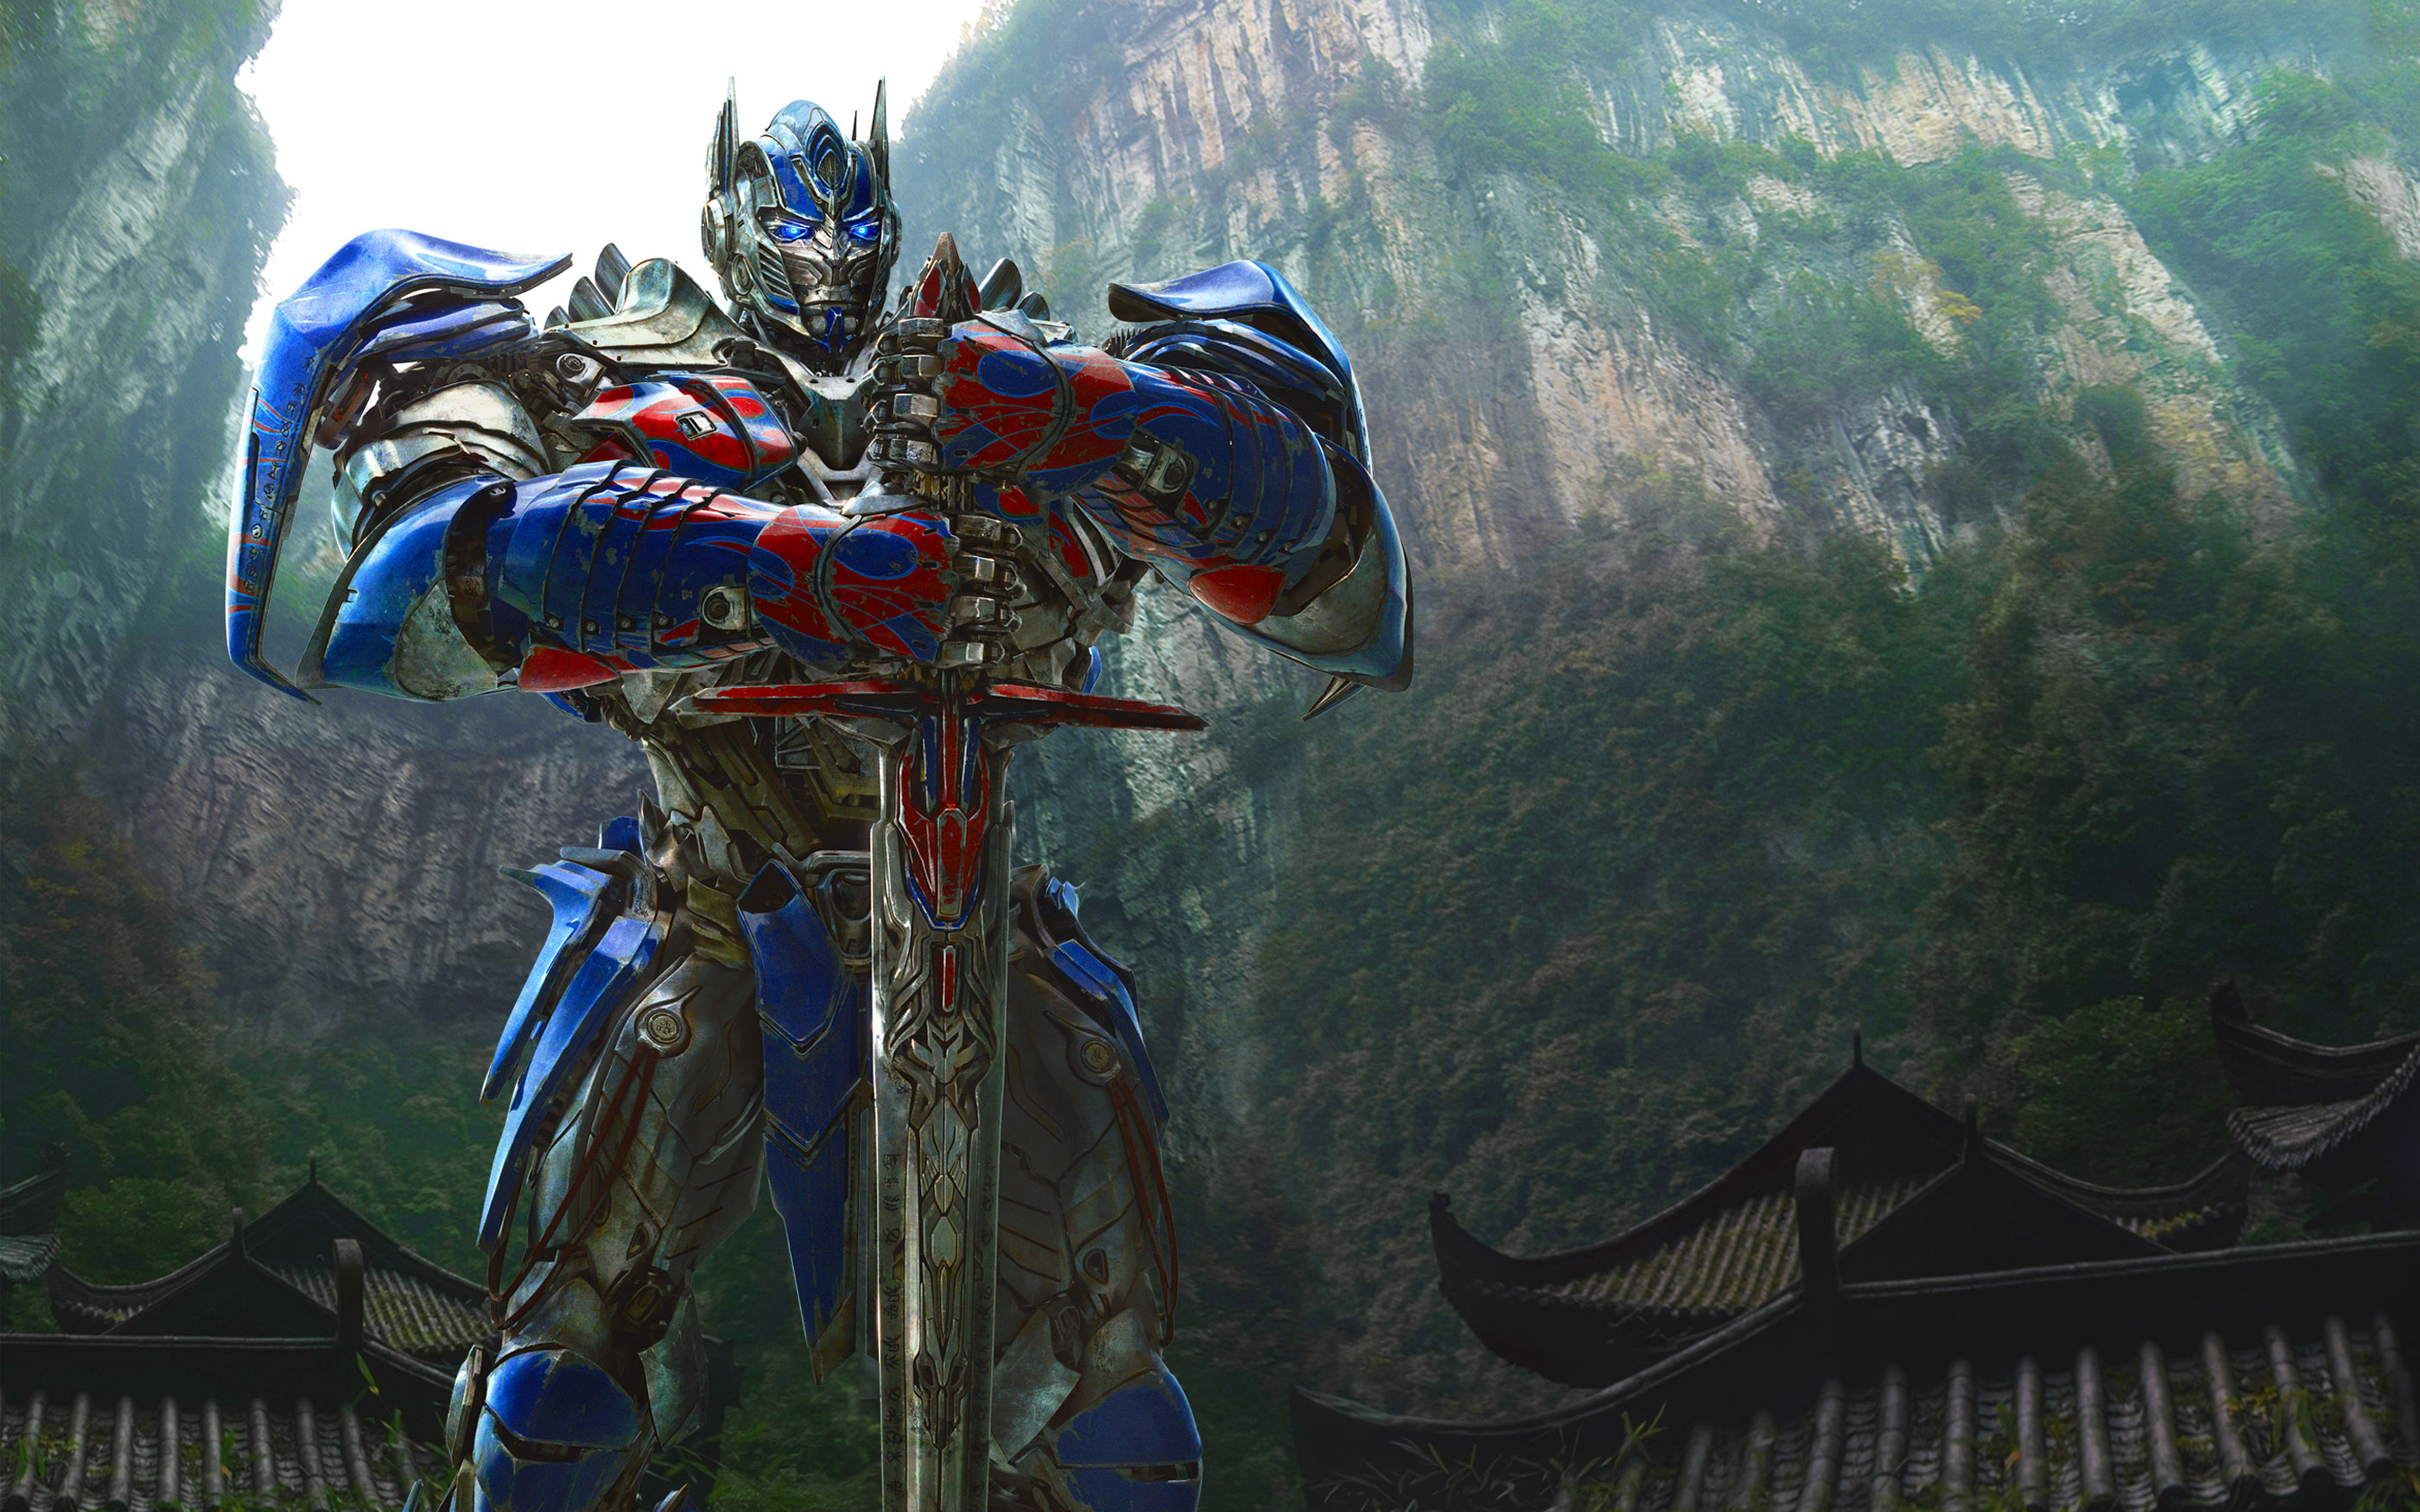 transformers pics and wallpapers 70 images